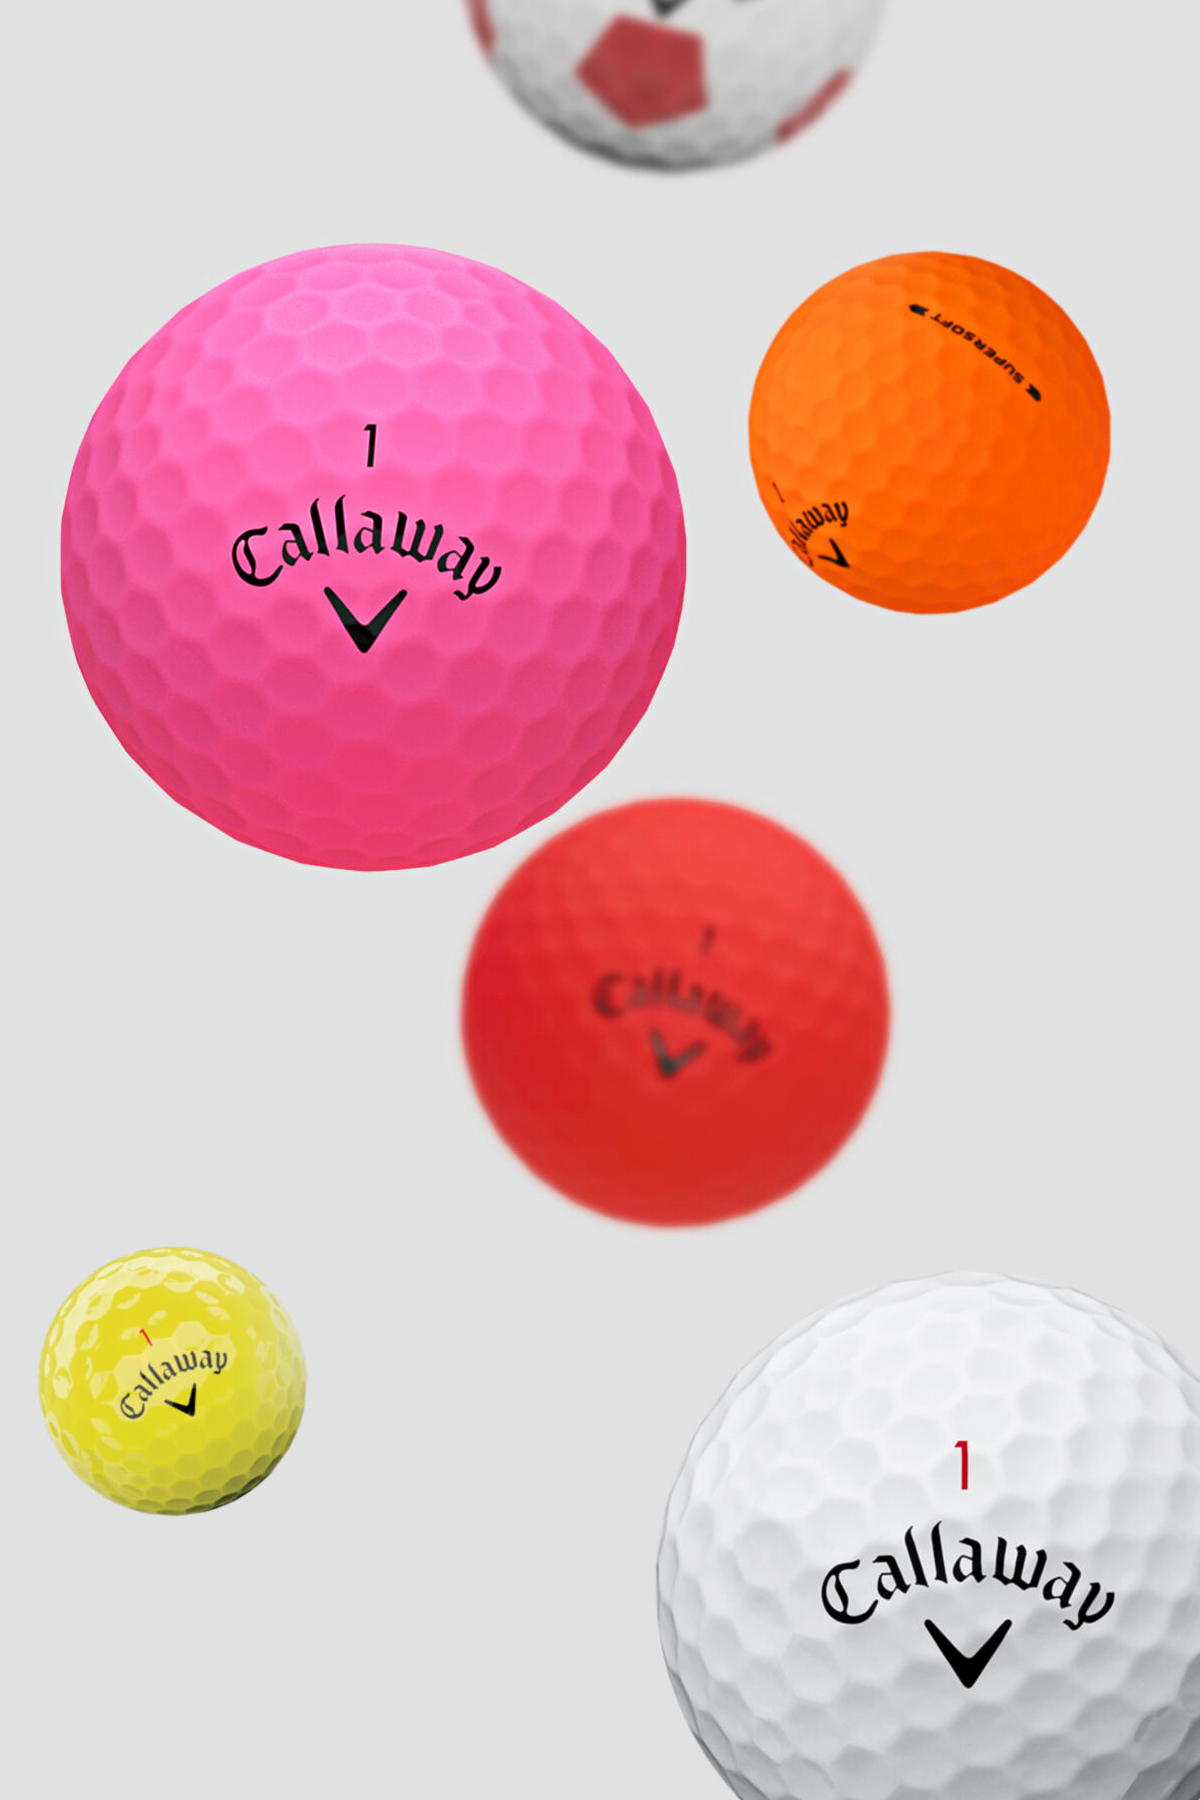 Thumbnail for ball-selector-tool-content